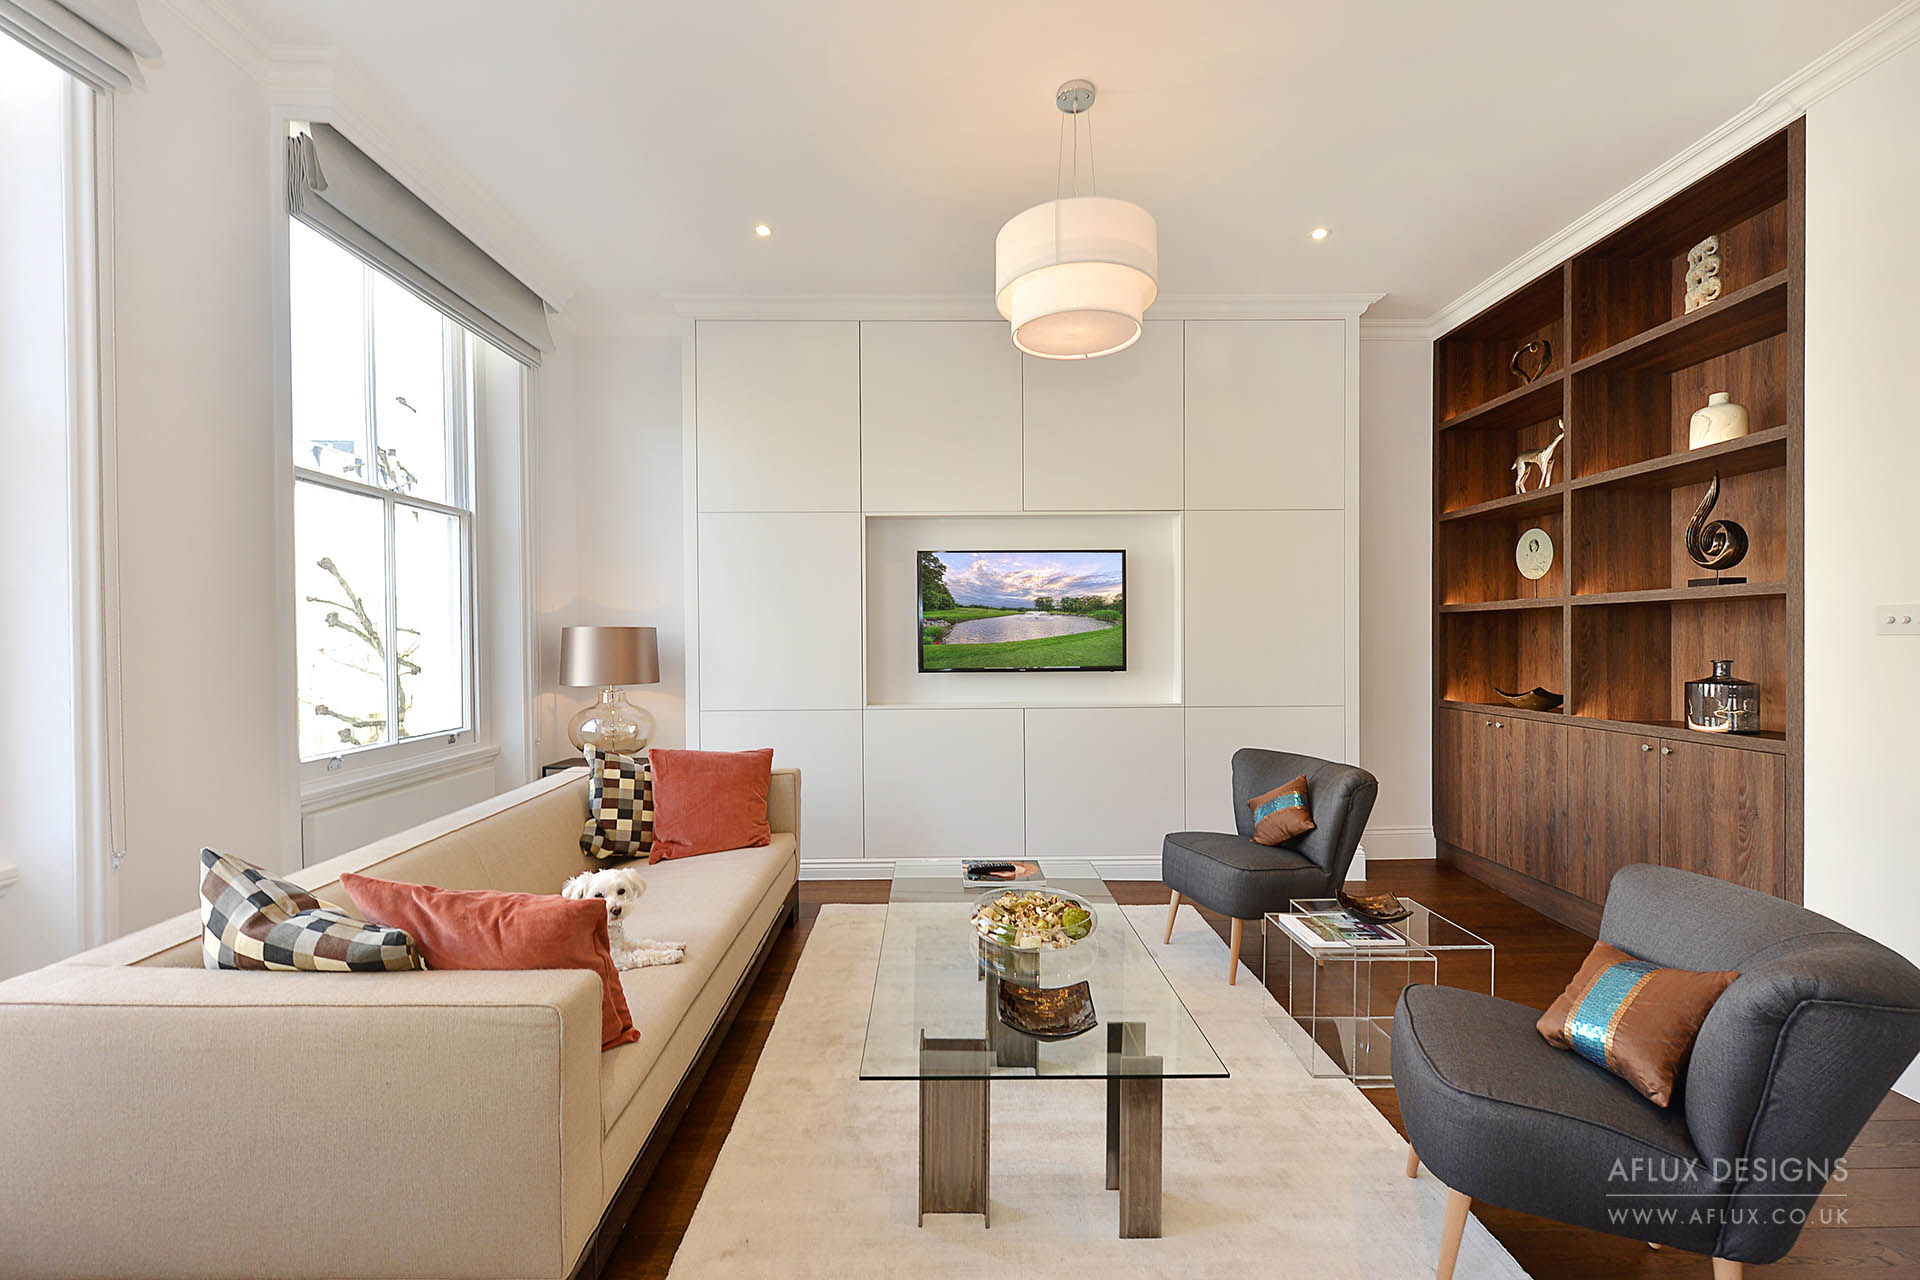 Queens Gate - LONDON SW7A second floor flat in a listed building on one of the most famous roads in South Kensington, London. floor to ceiling storage, including a 'hidden panelled door' to the main bathroom allowed for a very creative finish.